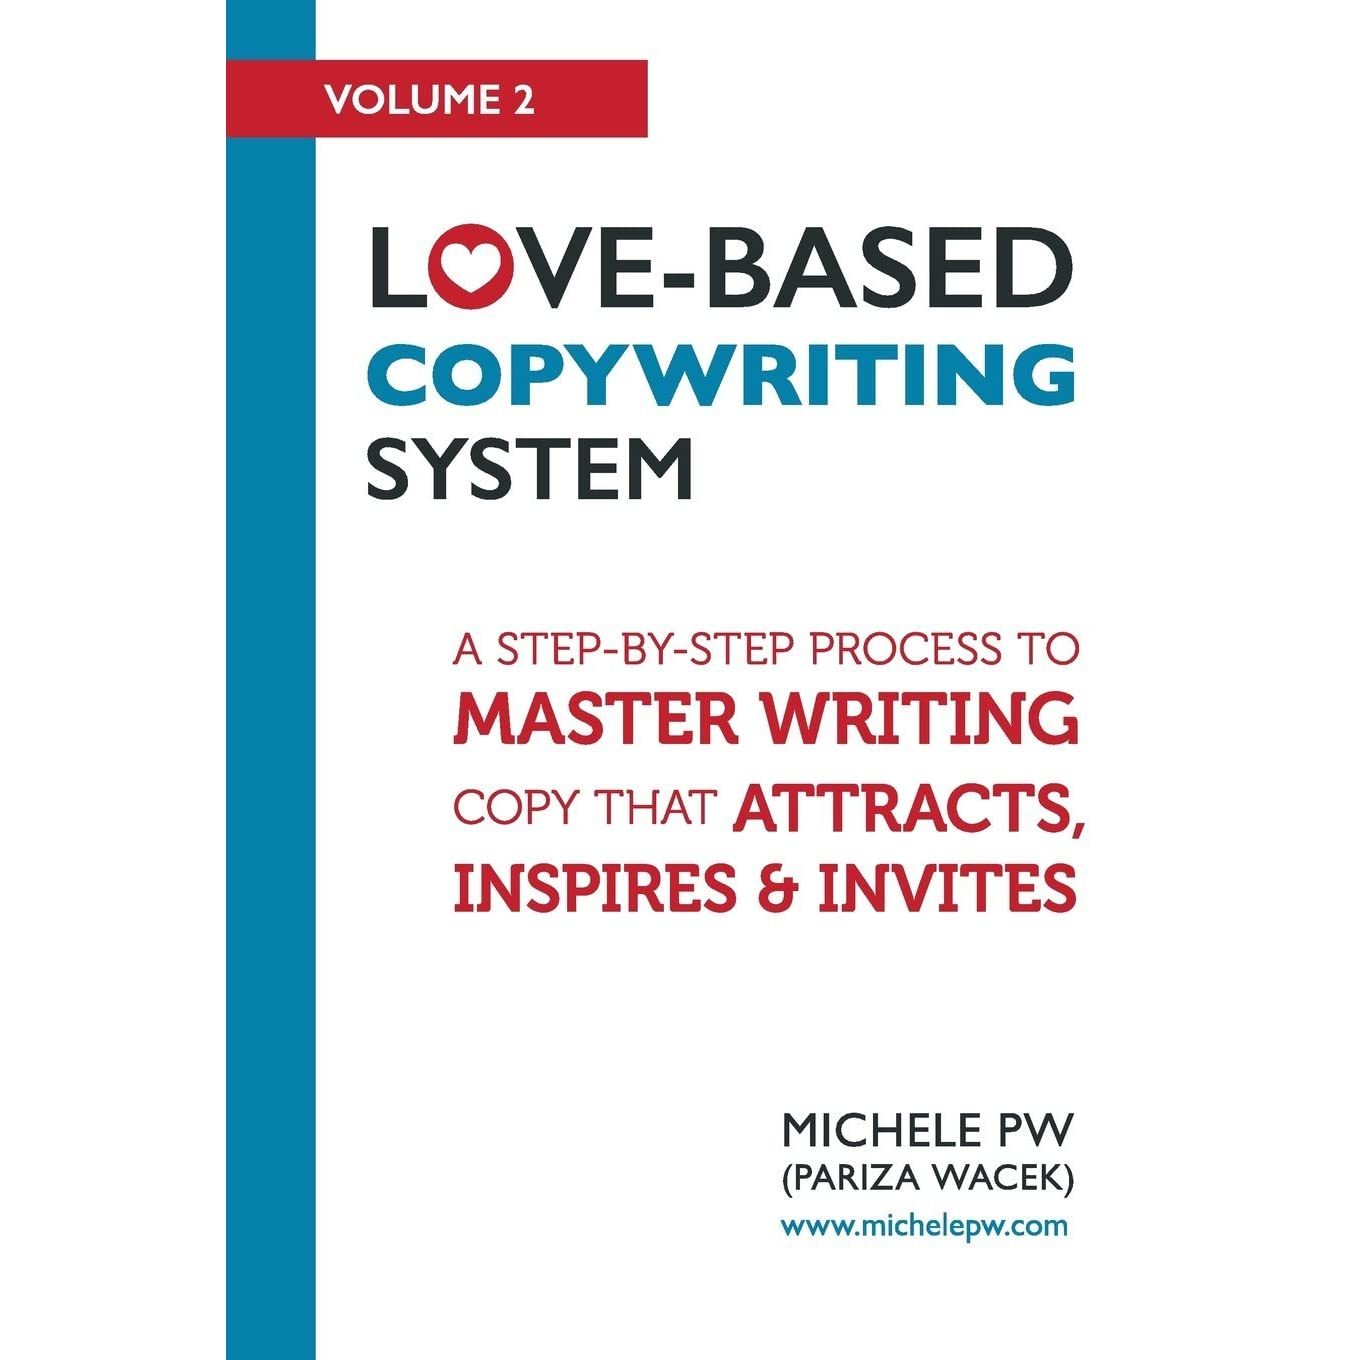 Episode 079: Love-Based Copywriting with Michele PW